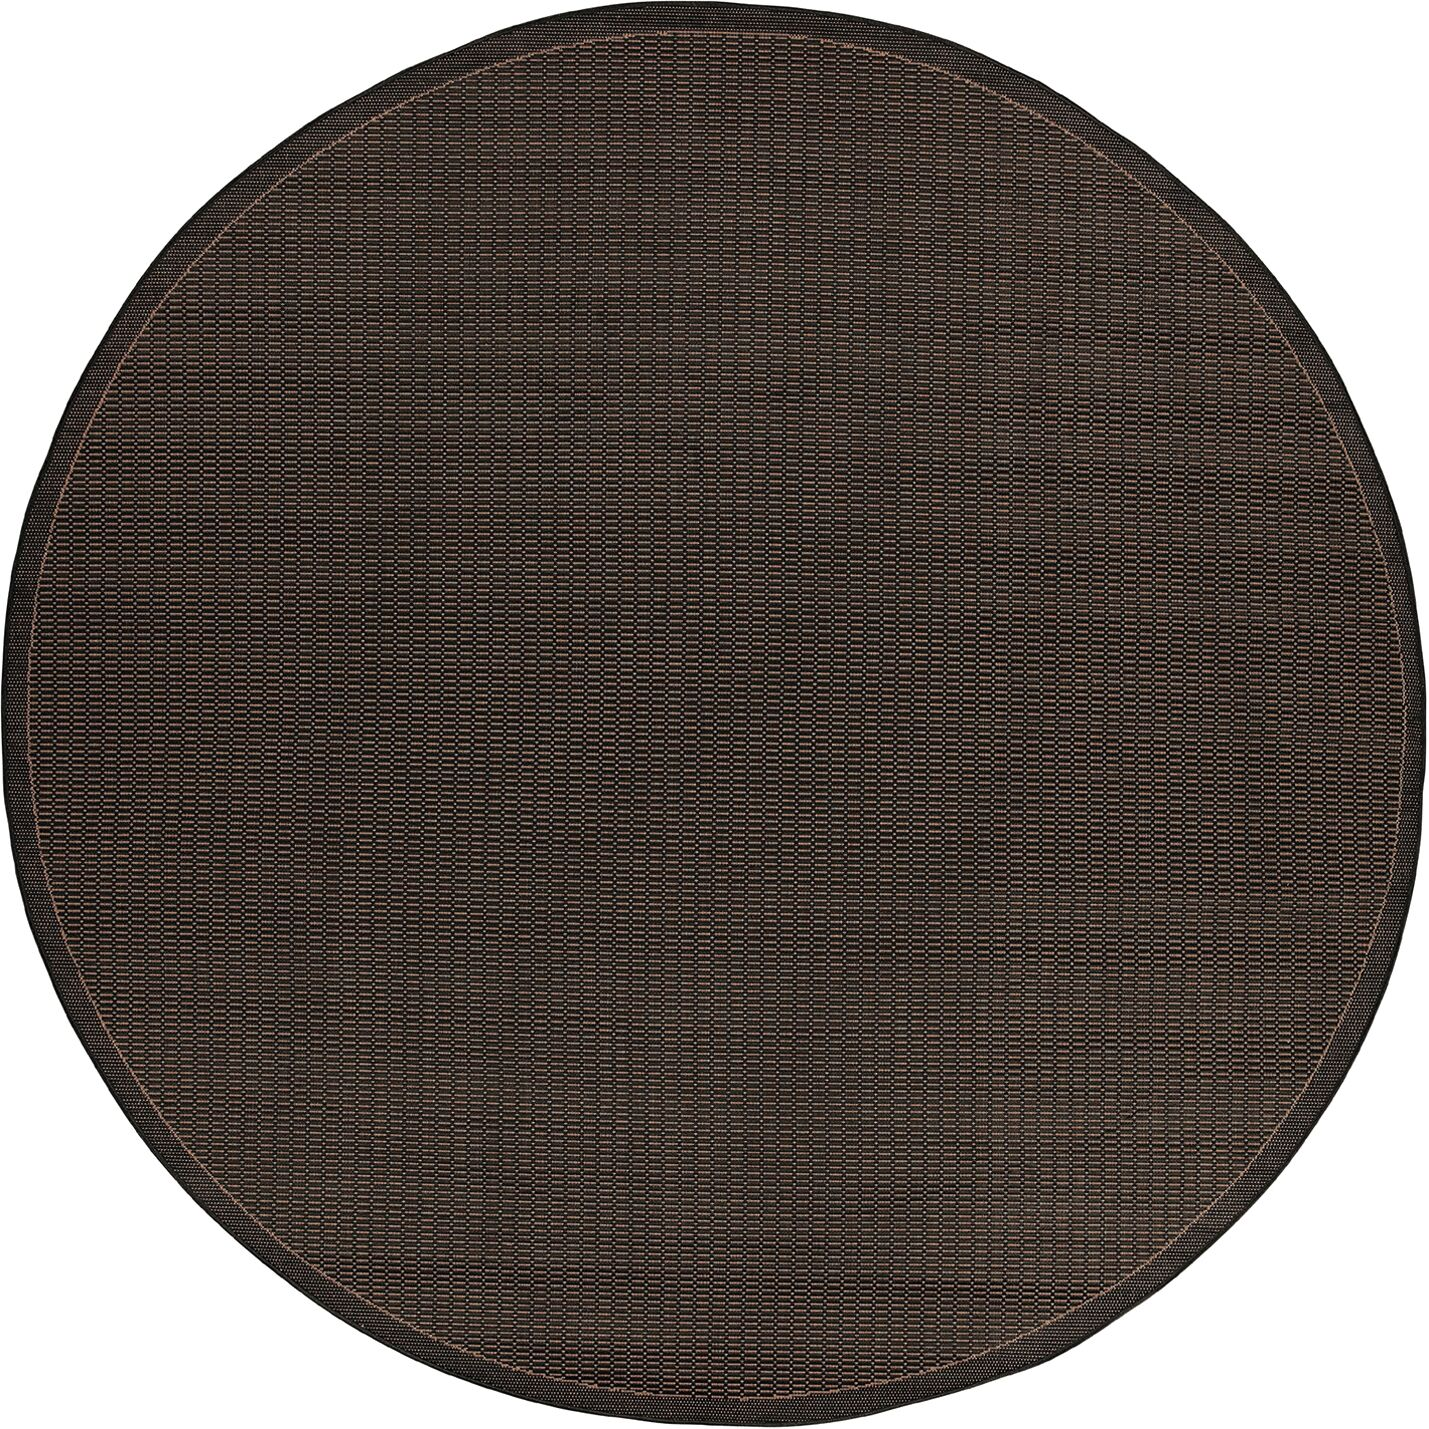 Ariadne Saddle Stitch Hand-Woven Black Cocoa Indoor/Outdoor Area Rug Rug Size: Rectangle 8'6